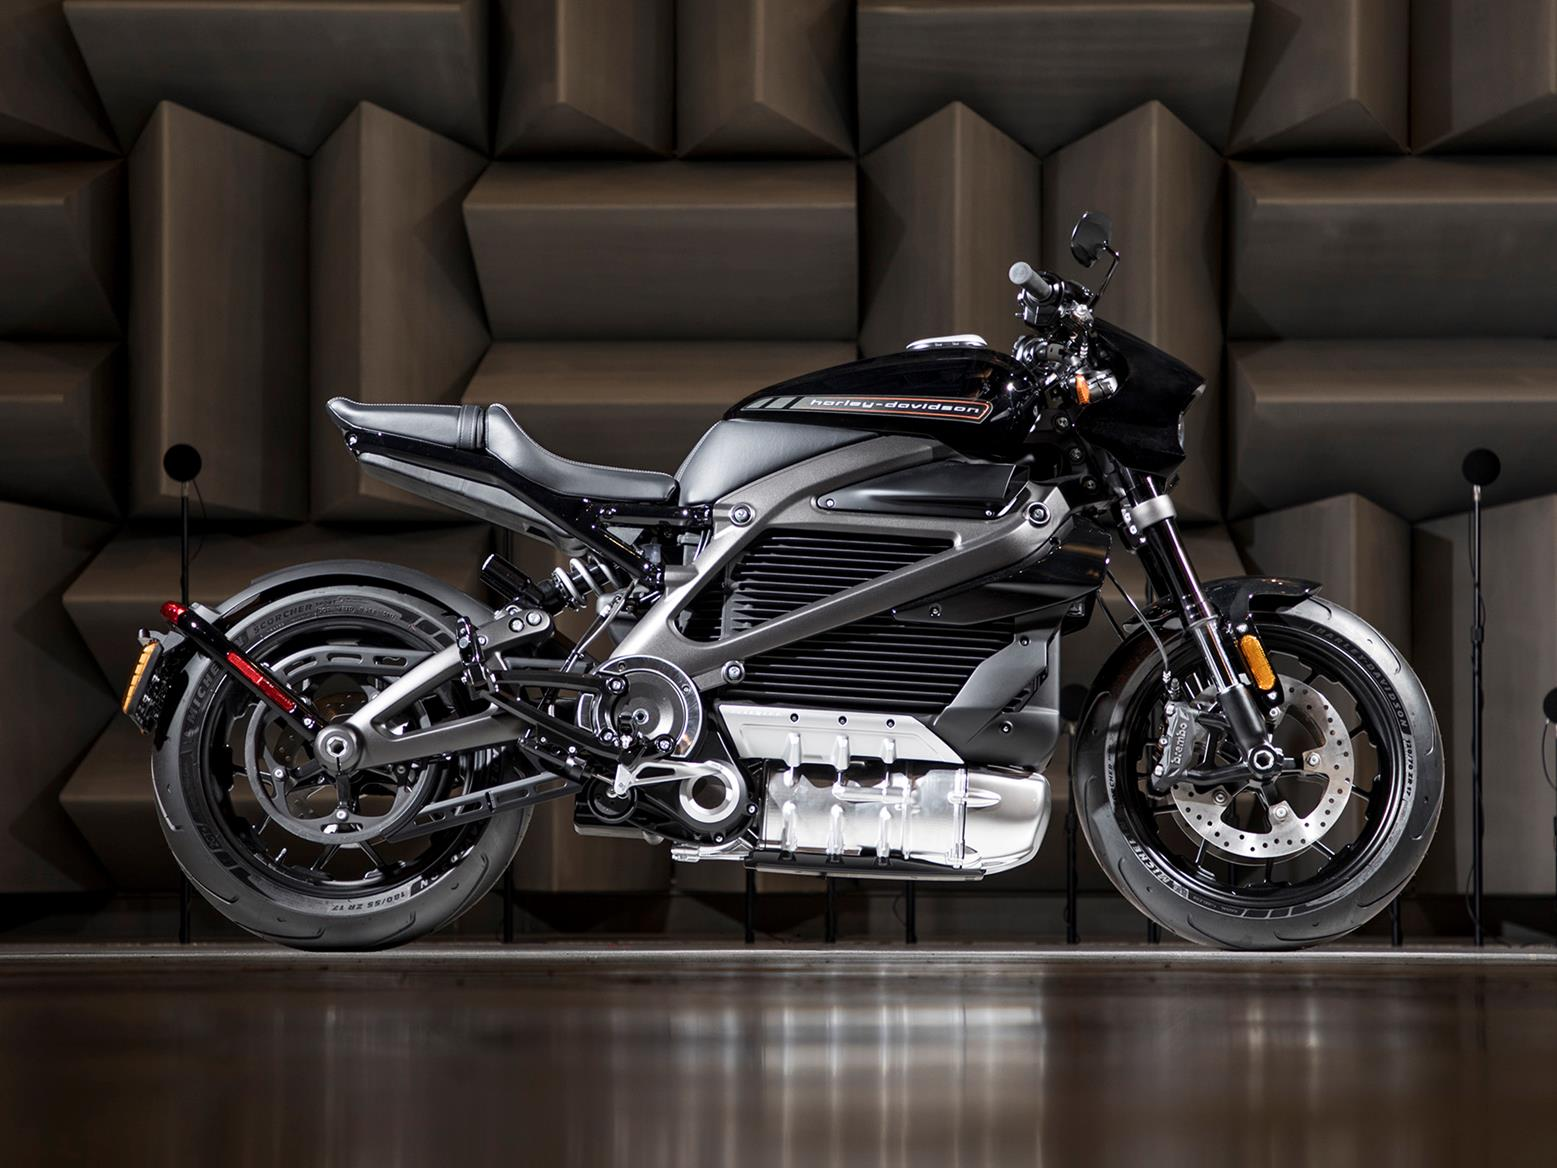 Harley-Davidson will launch an all-electric motorcycle